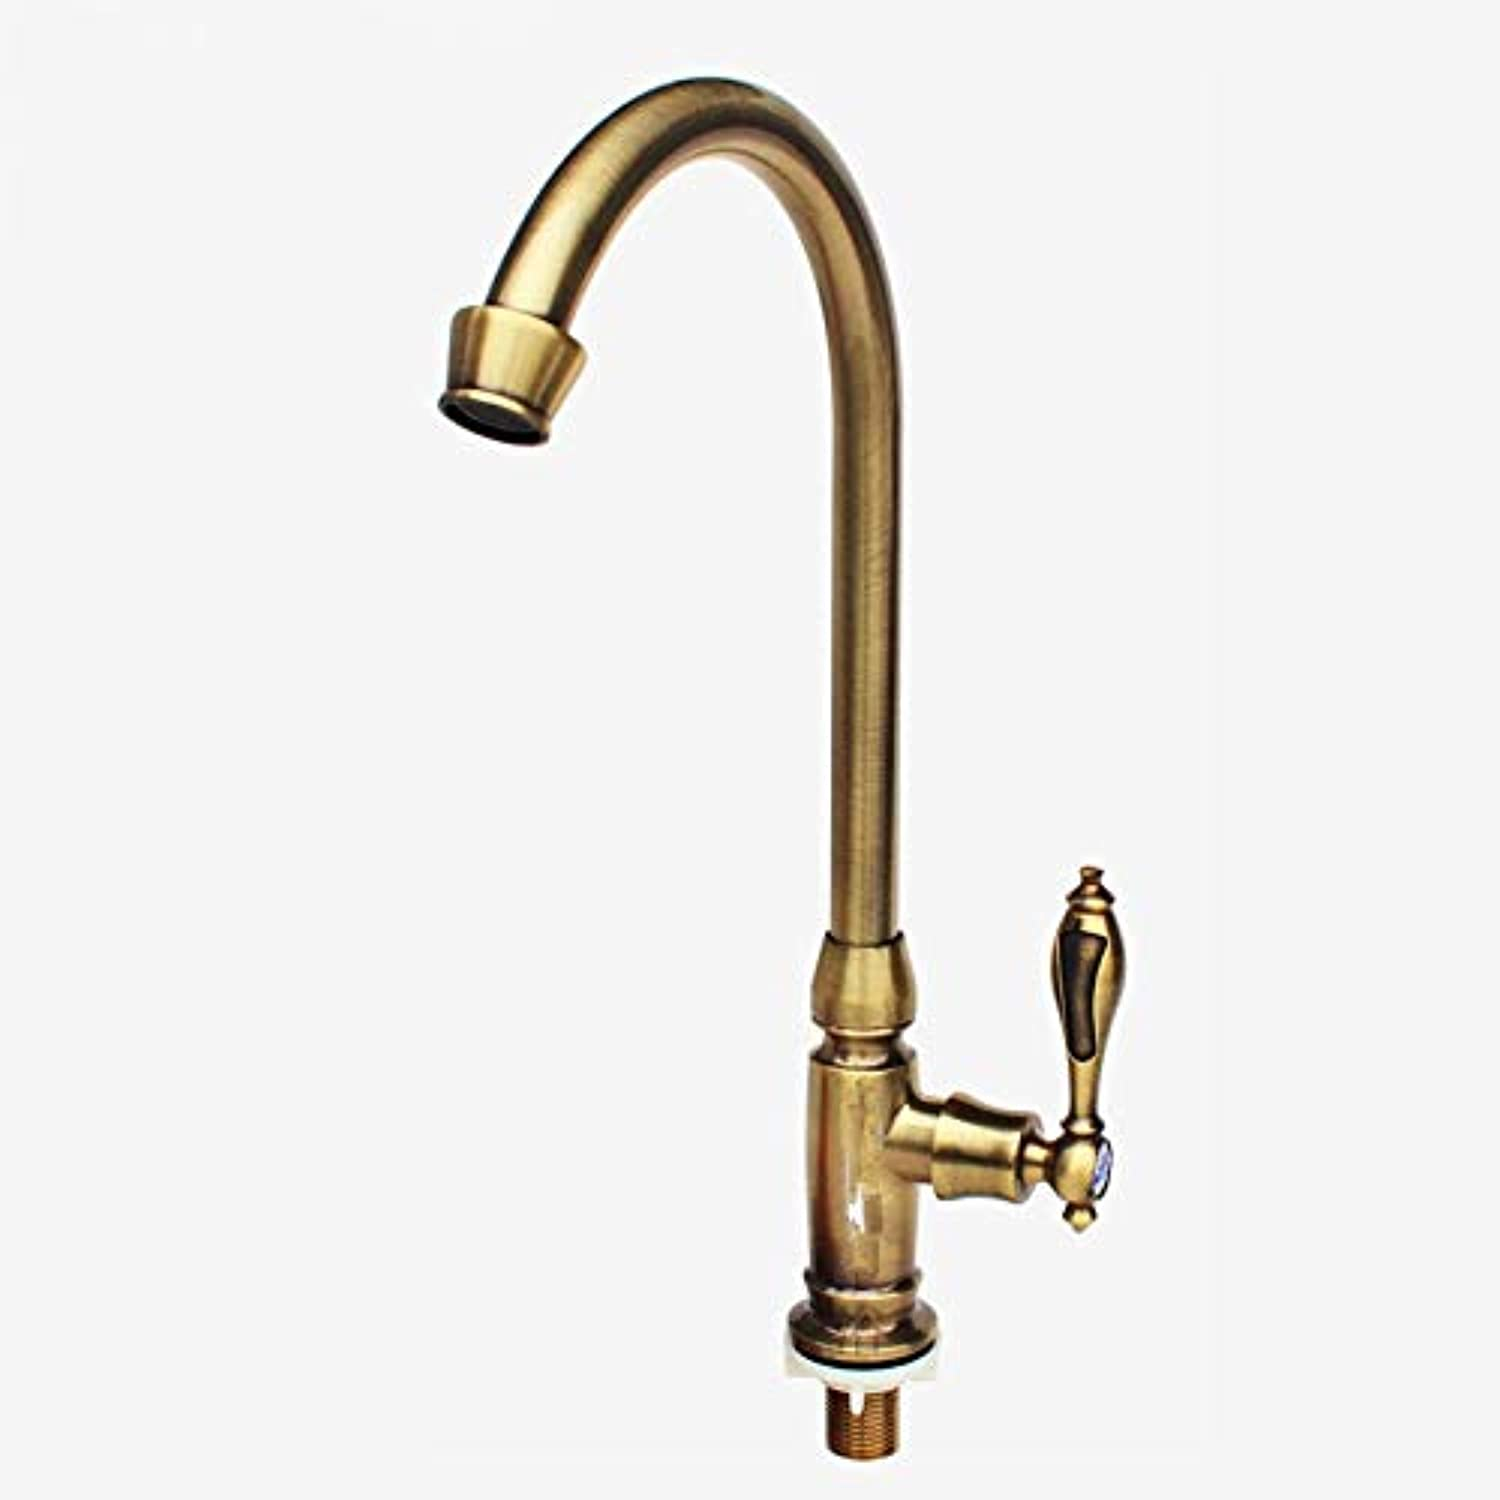 Zhcmy?Faucet Full Copper Valve Core greenical Single Cold Sink Faucet Brushed 360 redating European Antique Kitchen Faucet